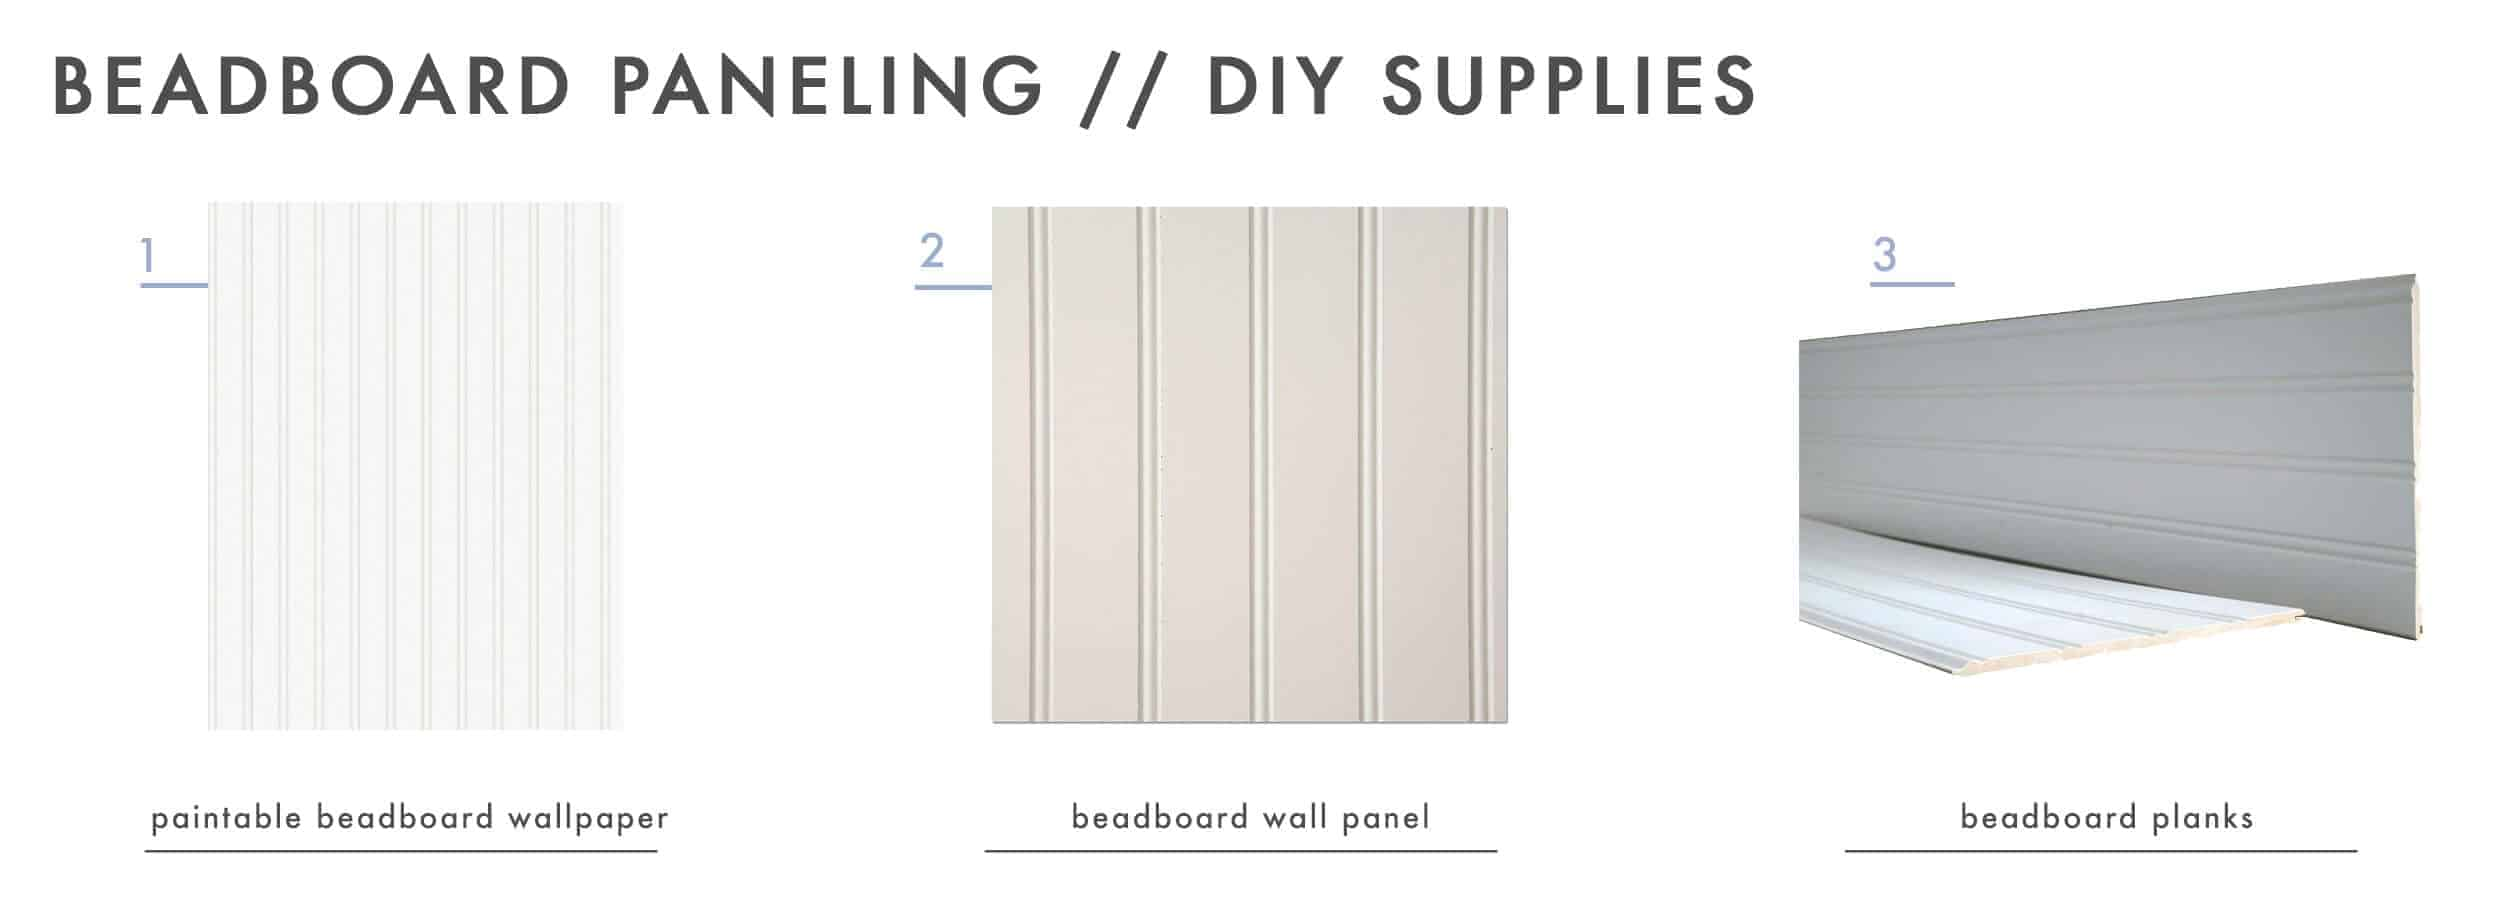 How To Add Character And Charm To Boring Architecture And Houses Ceiling Beadboard Paneling Diy Supplies